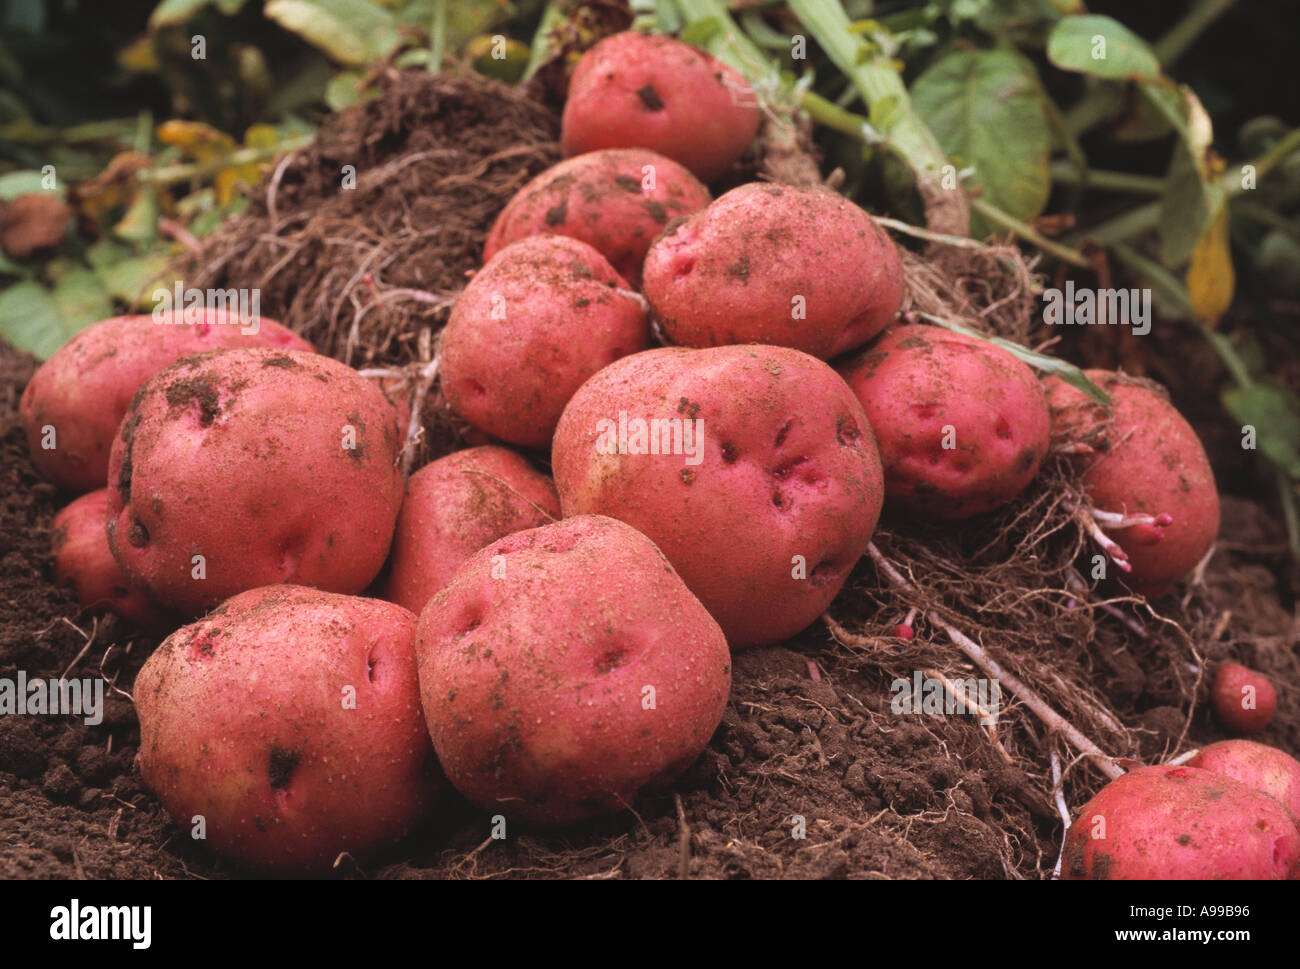 Agriculture Pontiac Red Potatoes Dug Up And Laying Alongside Root Pod In The Field With